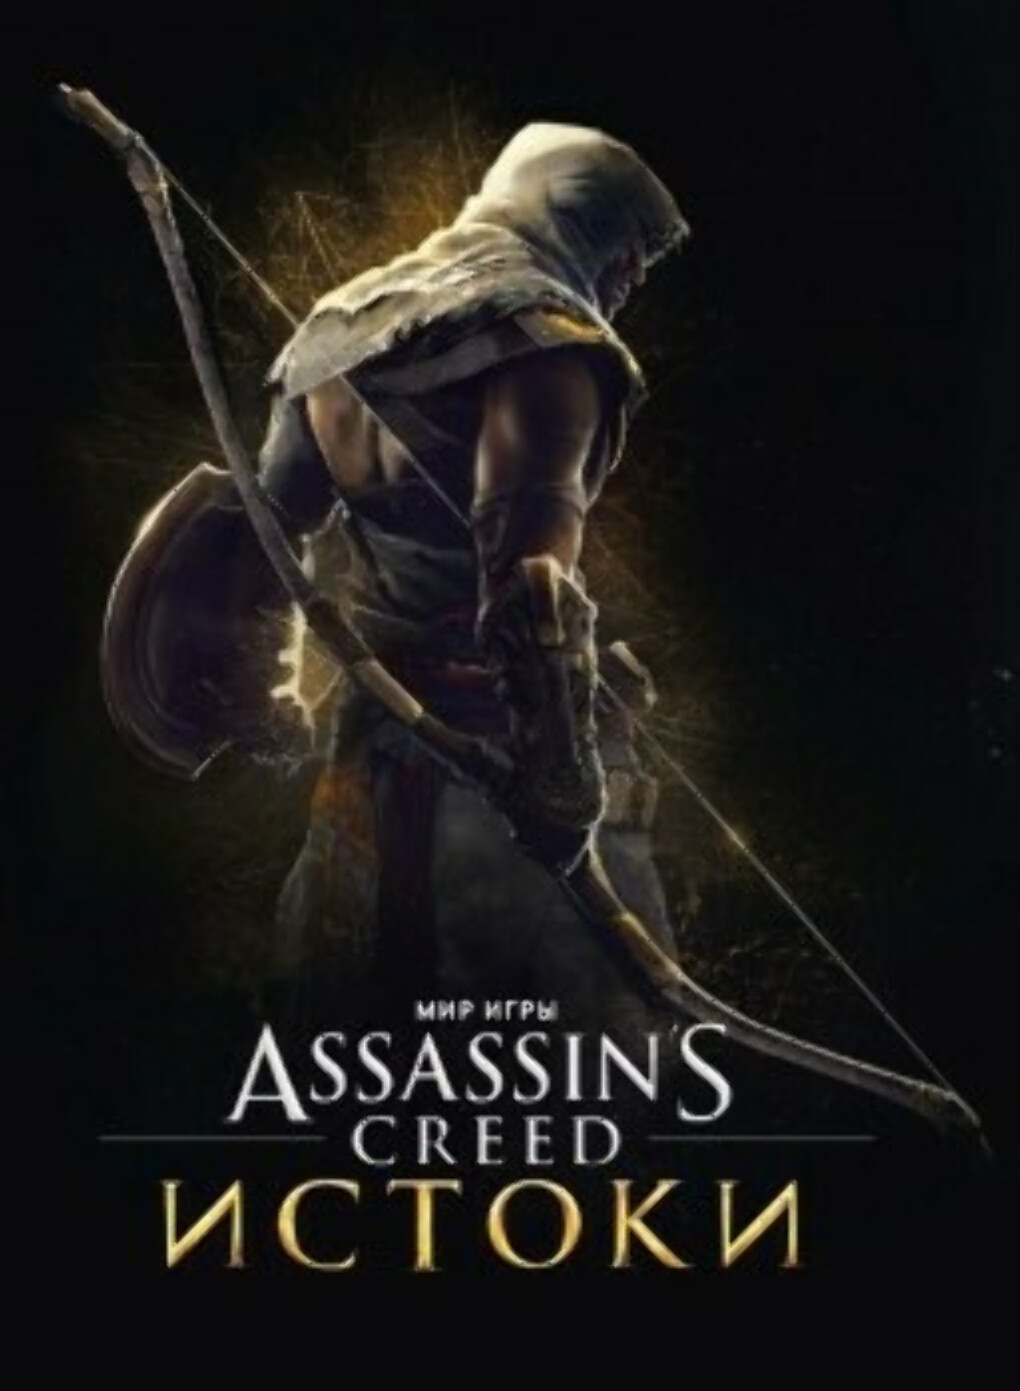 Артбук Мир игры Assassin's Creed Истоки